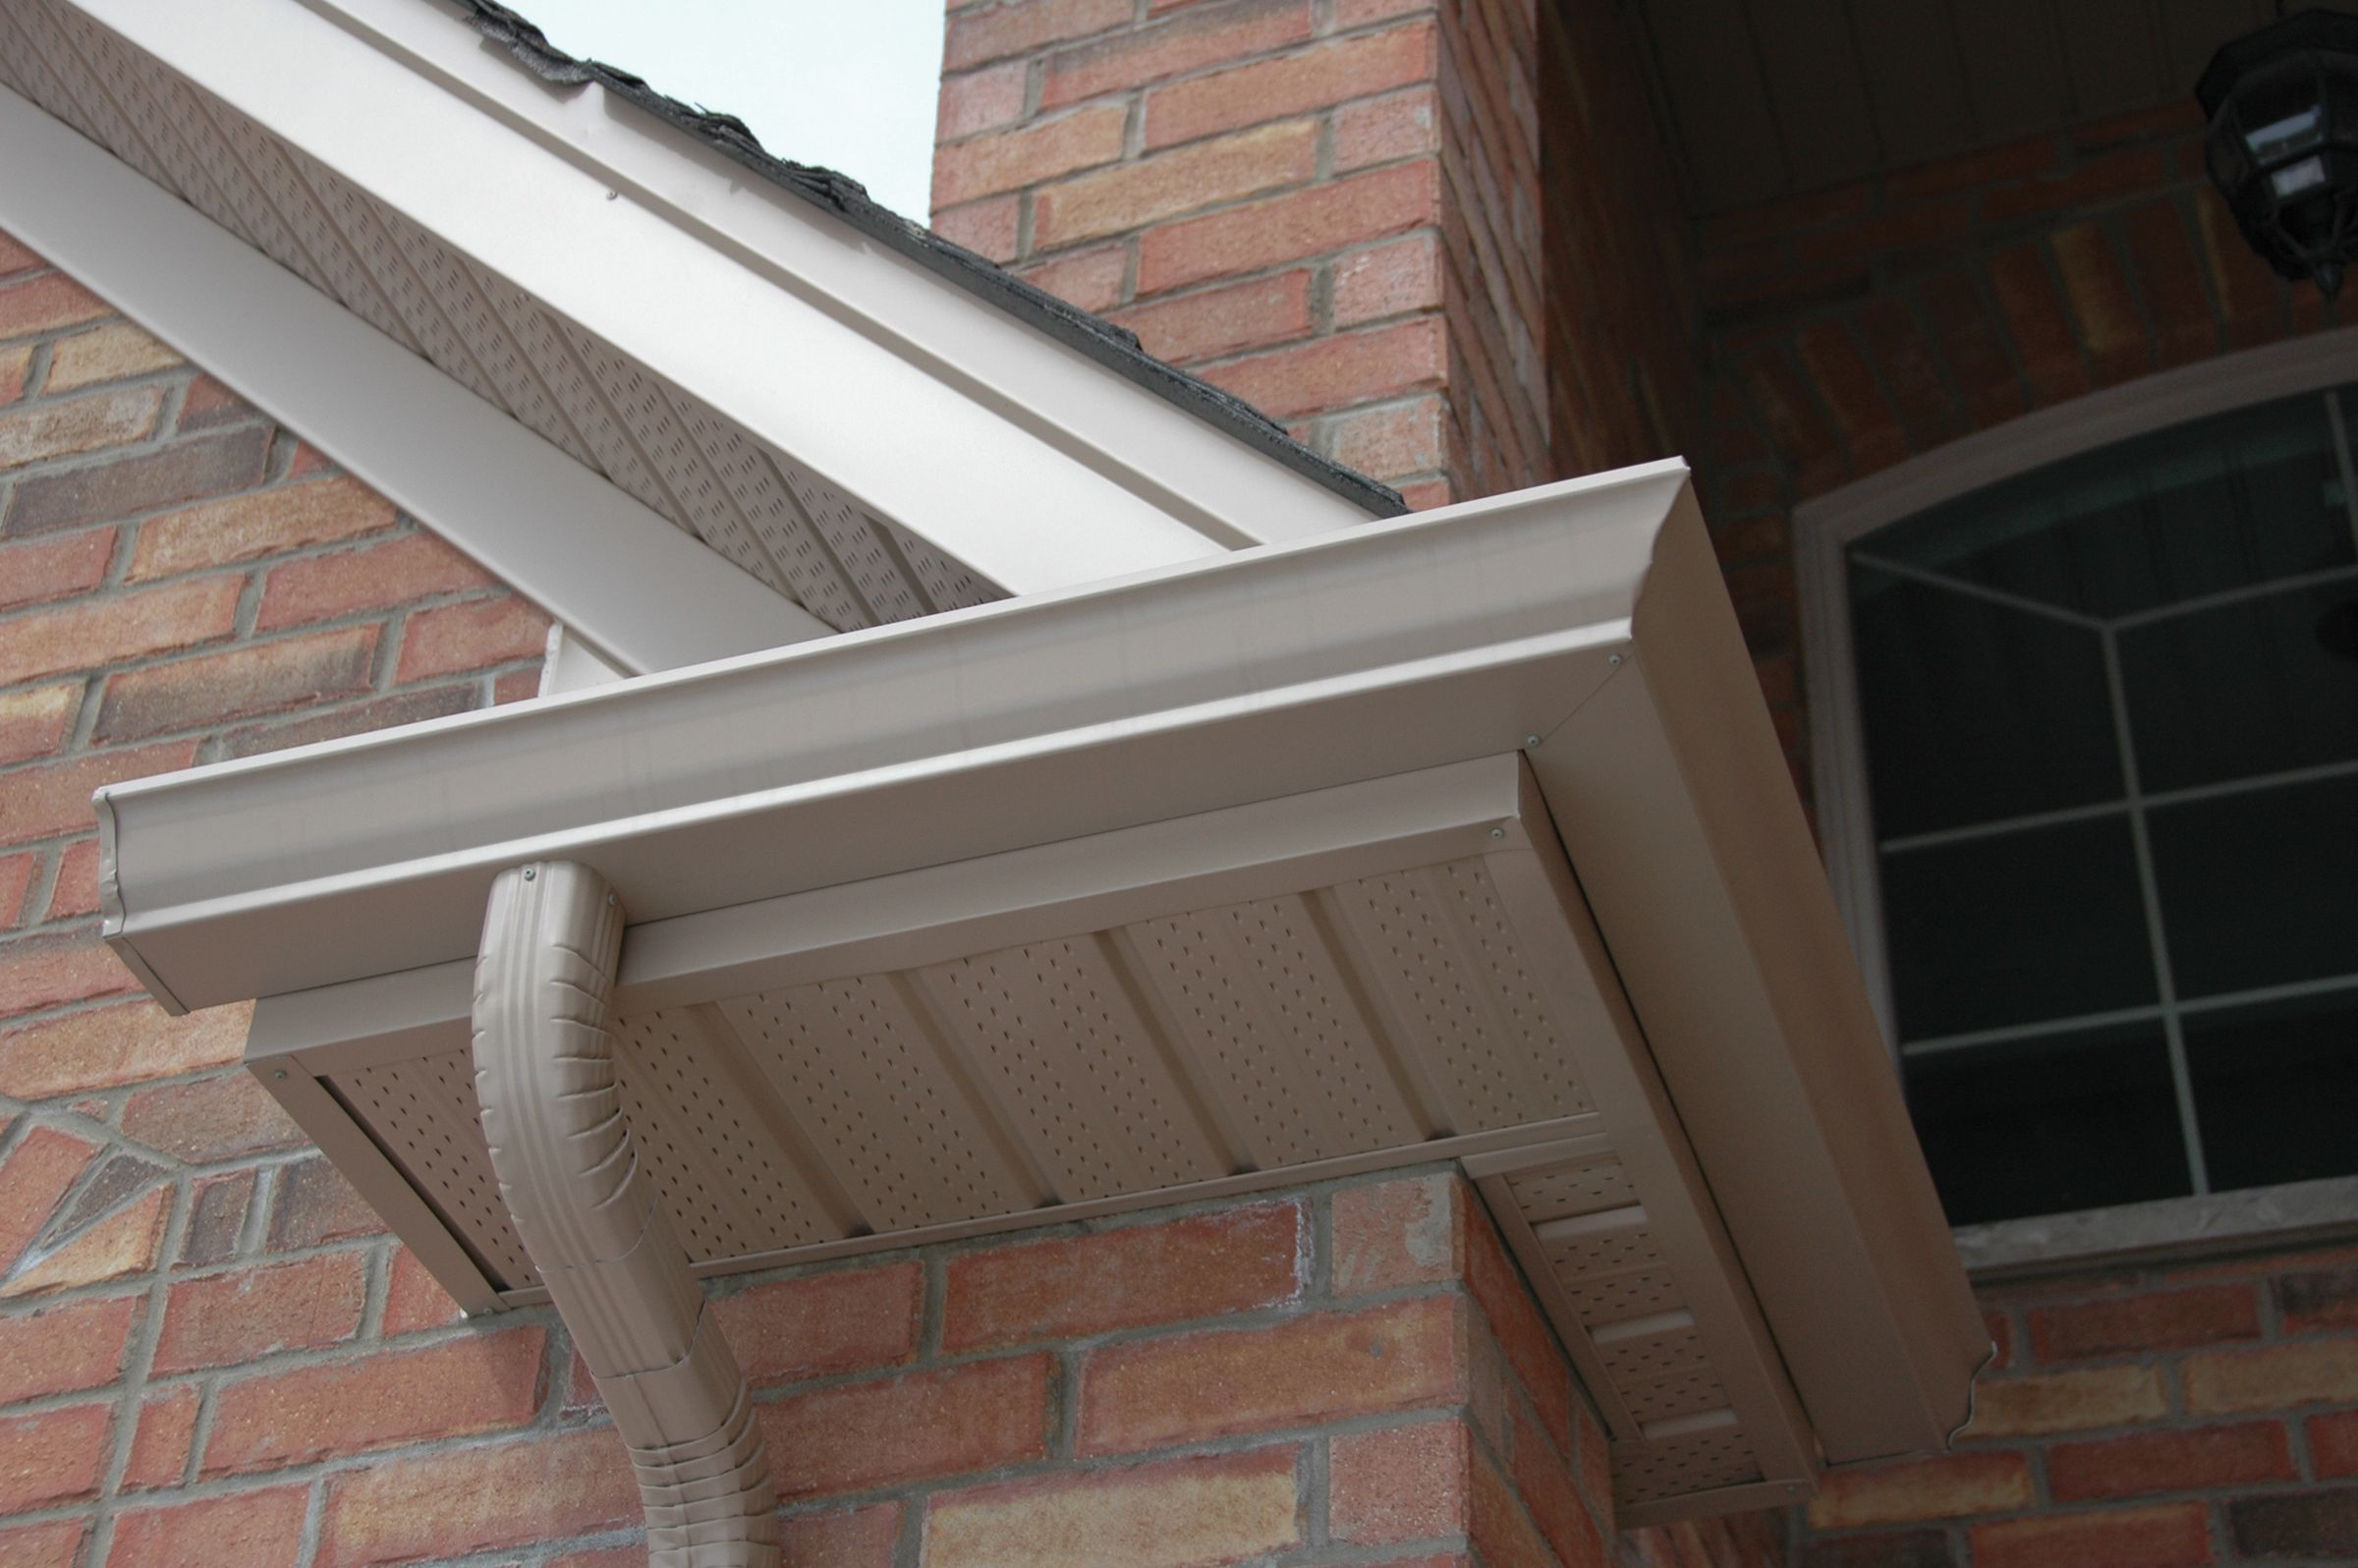 How to paint fascia boards - Sandalwood Soffit Fascia And Eavestrough Gentek